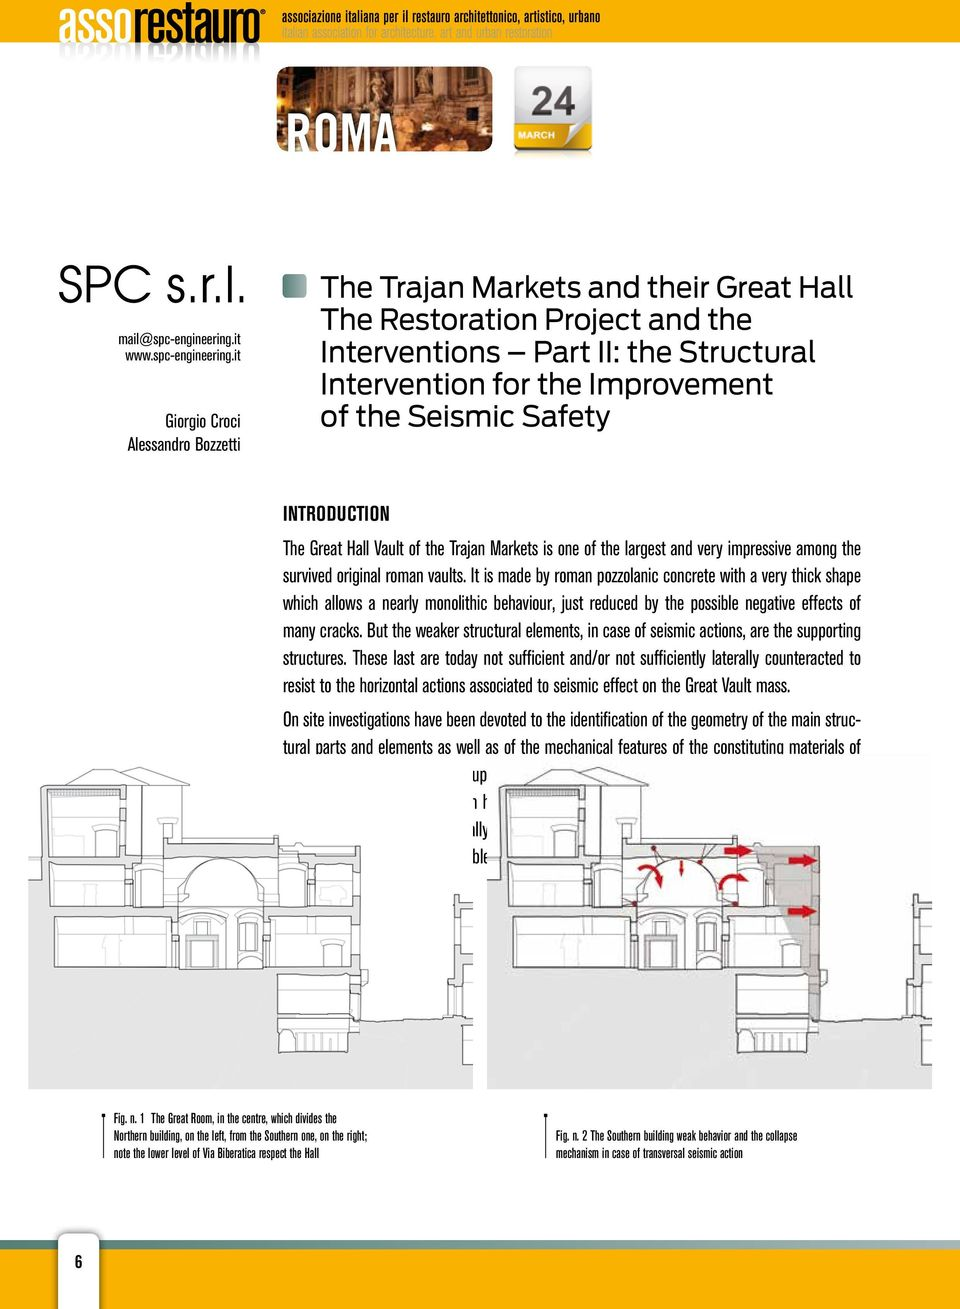 it Giorgio Croci Alessandro Bozzetti The Trajan Markets and their Great Hall The Restoration Project and the Interventions Part II: the Structural Intervention for the Improvement of the Seismic